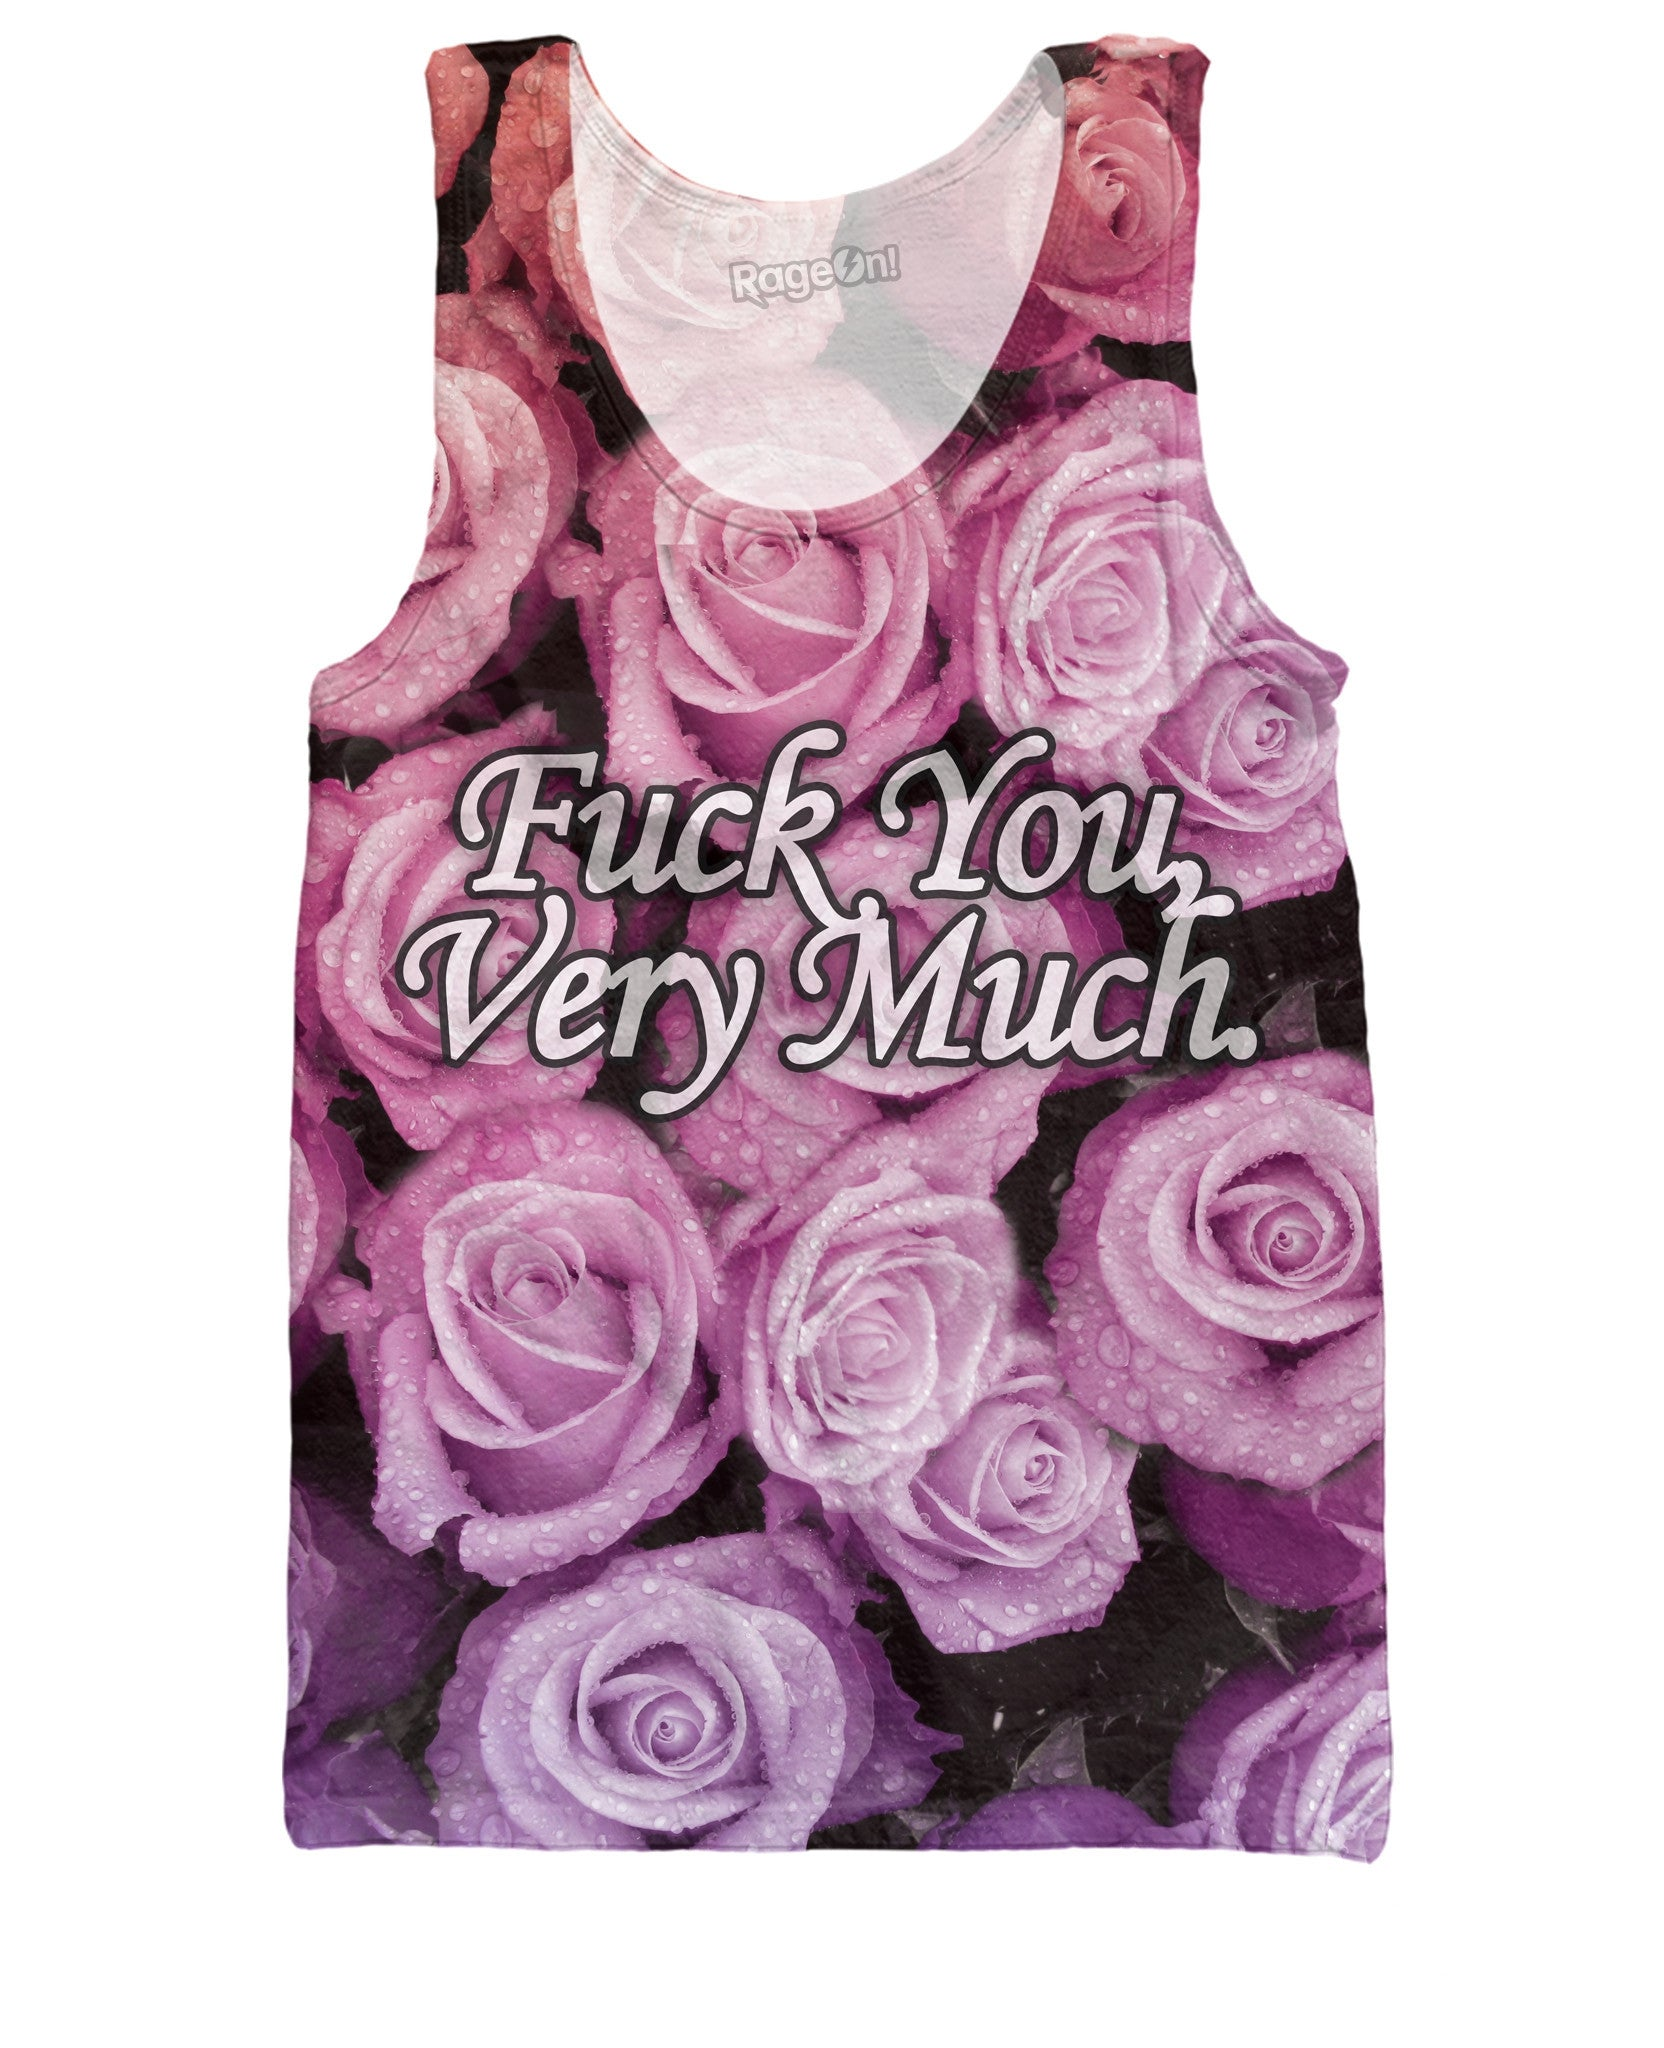 Fuck You Very Much Tank Top